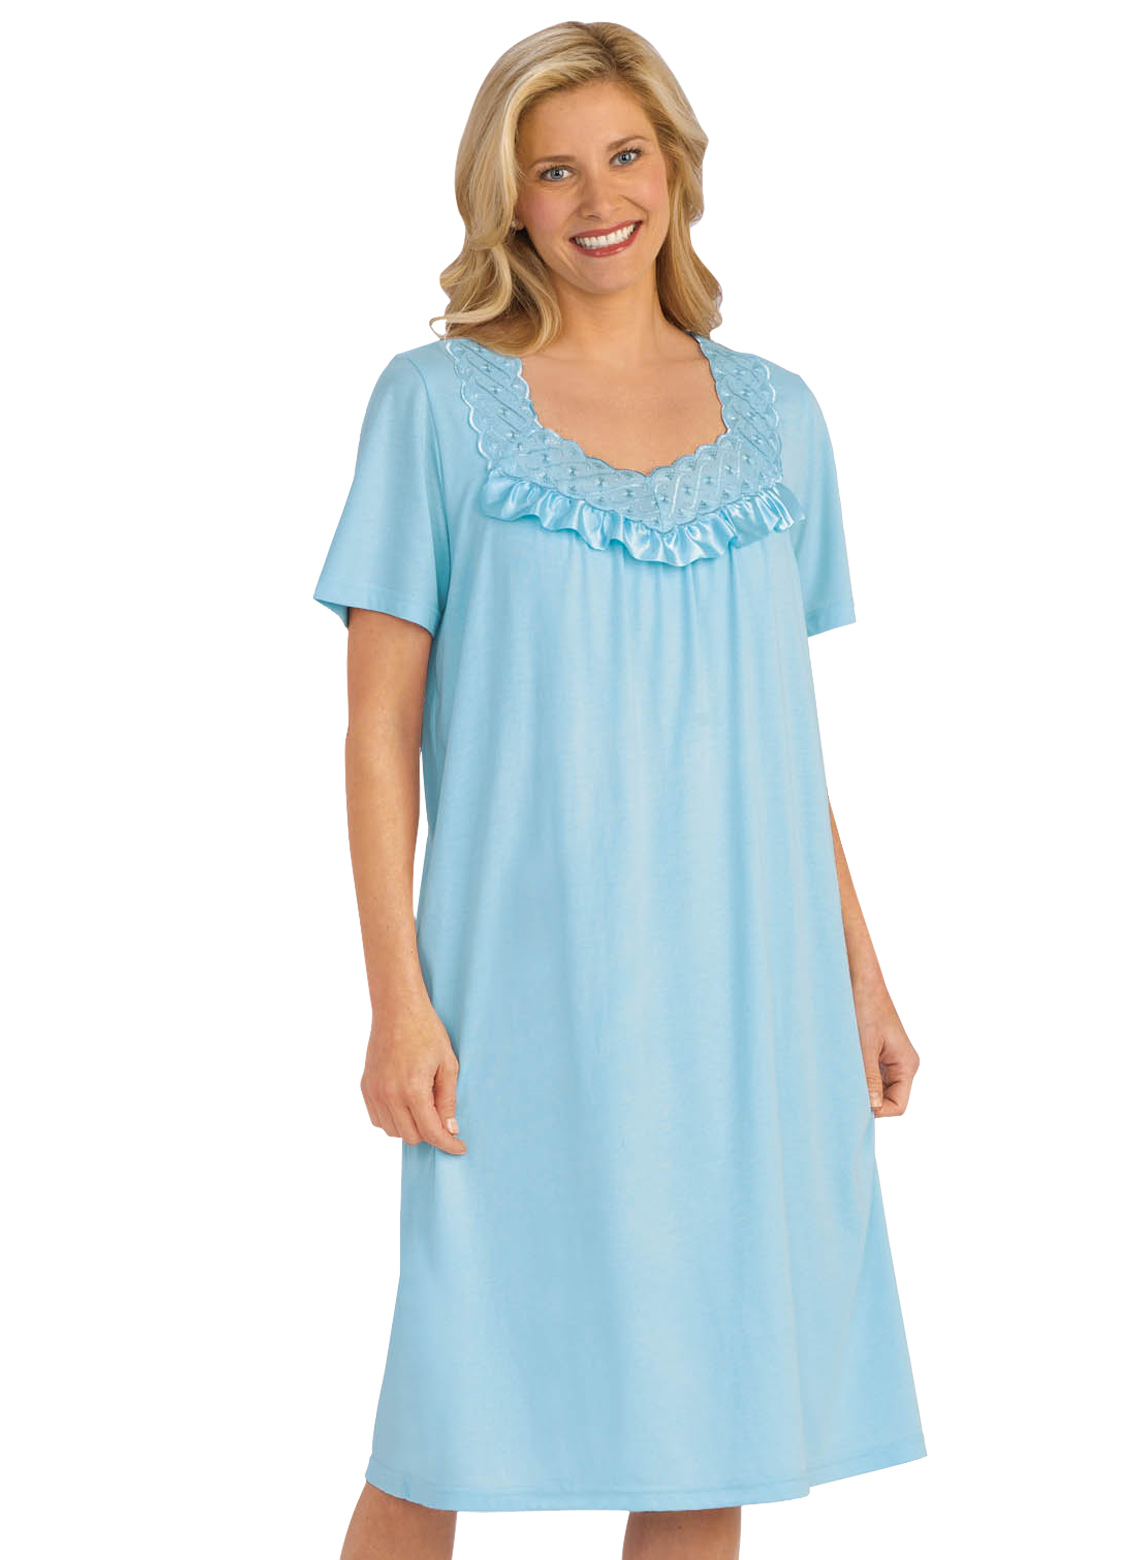 Find great deals on eBay for nightgown. Shop with confidence.